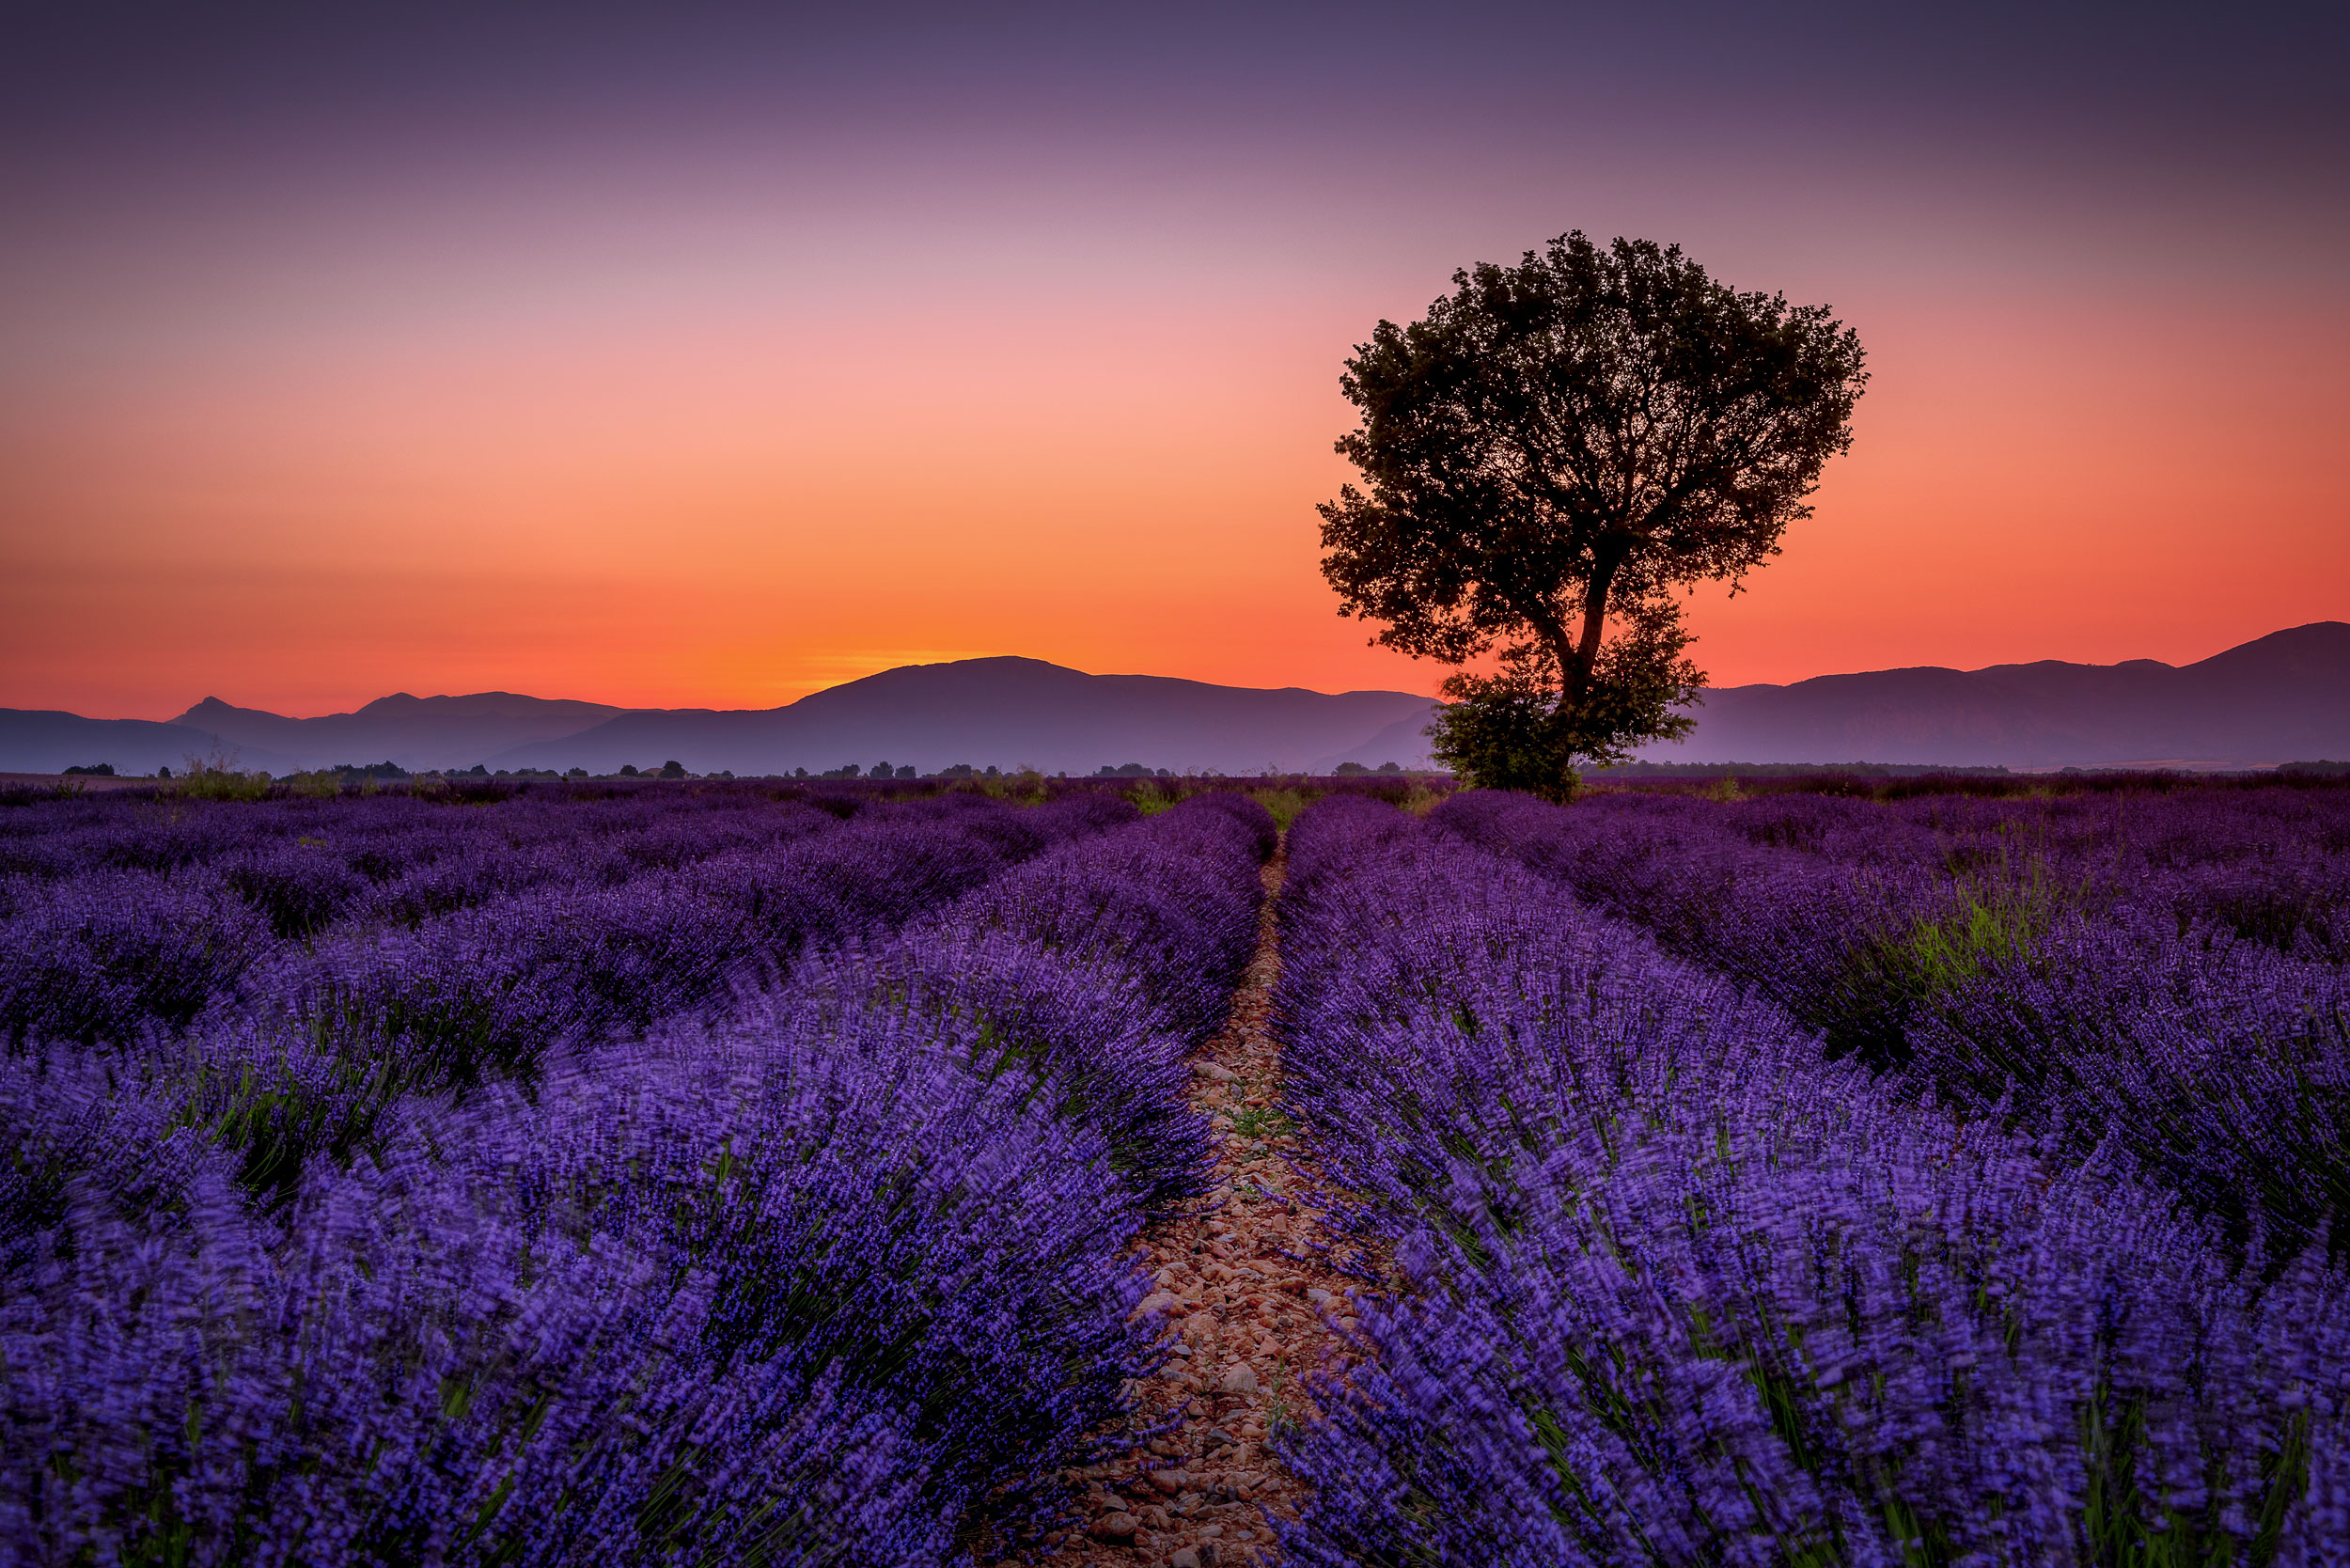 The Lavender Fields of Provence